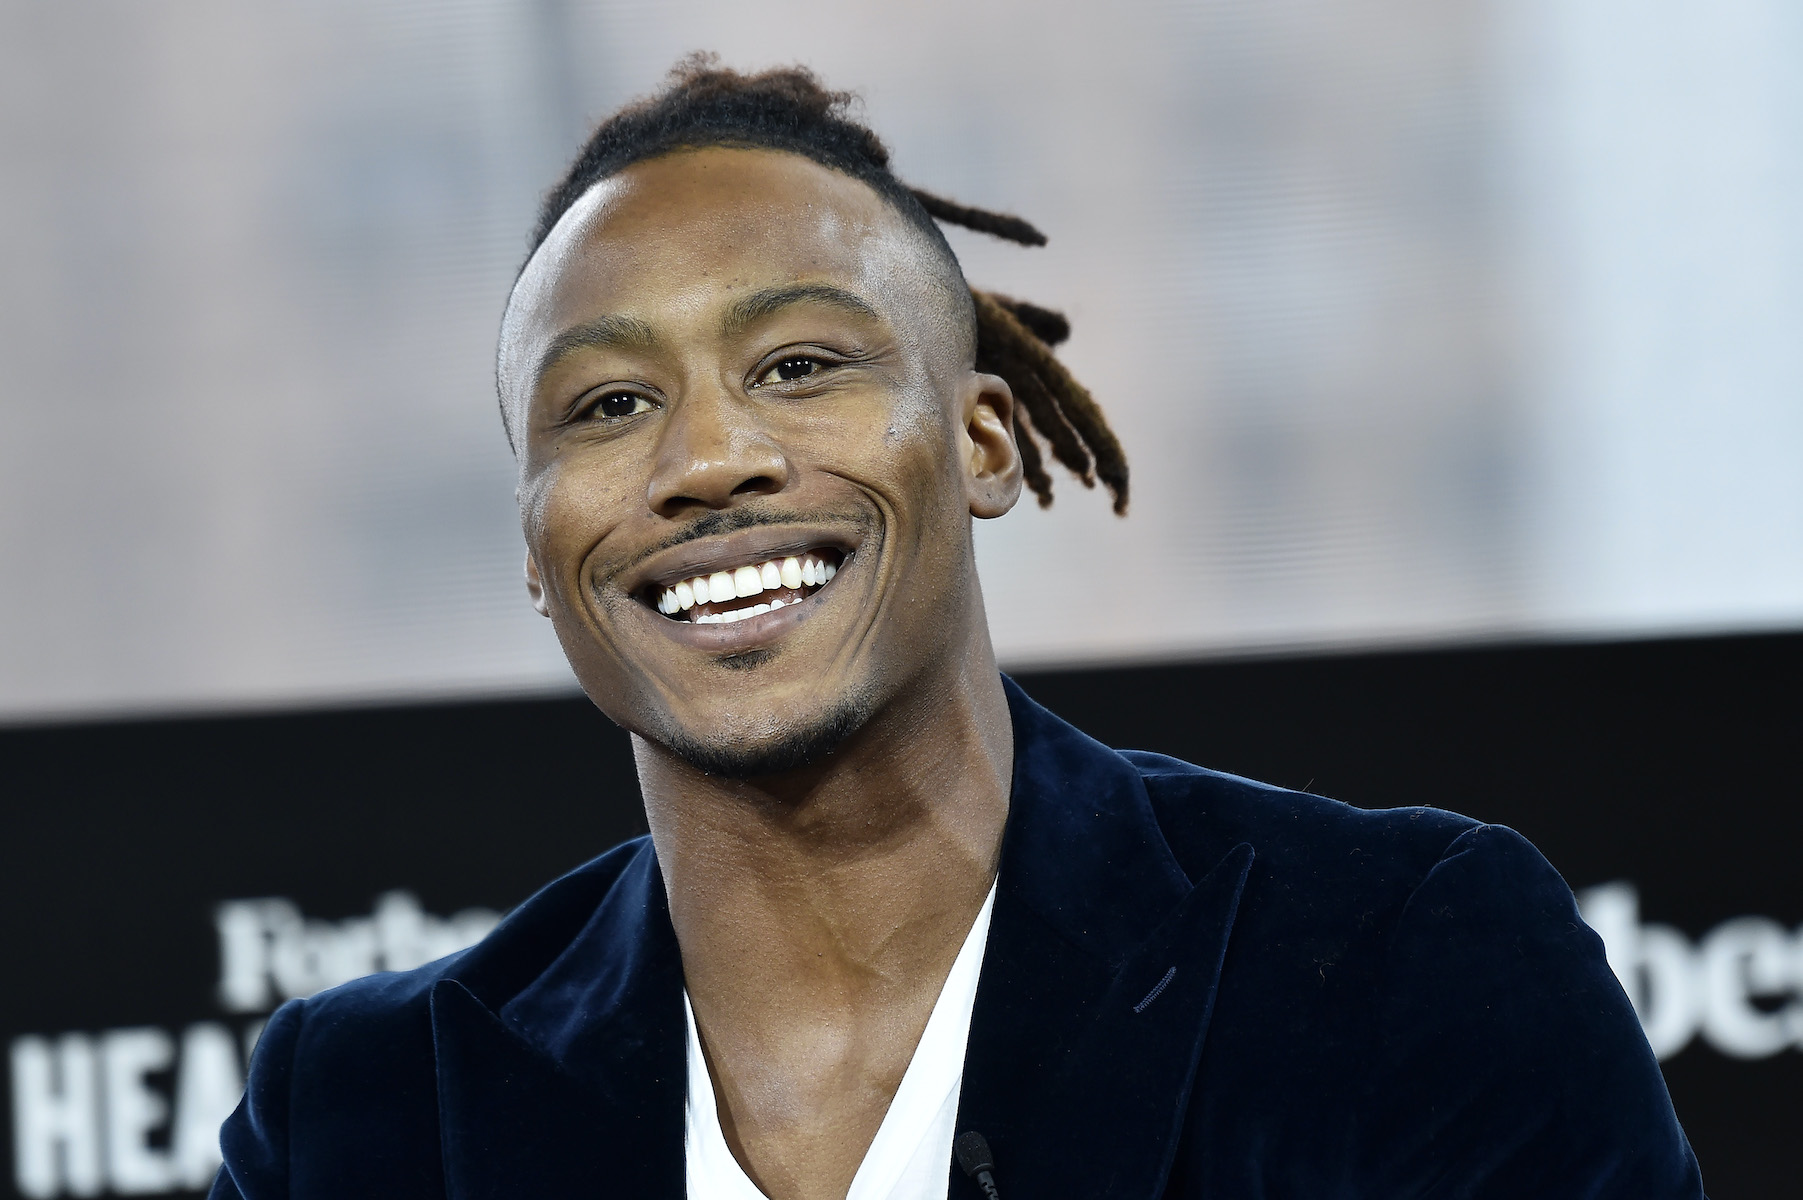 DECEMBER 05: NFL Wide Receiver and Executive Chairman & Co-Founder of Project 375, Brandon Marshall attends 2019 Forbes Healthcare Summit at the Jazz at Lincoln Center on December 05, 2019 in New York City.